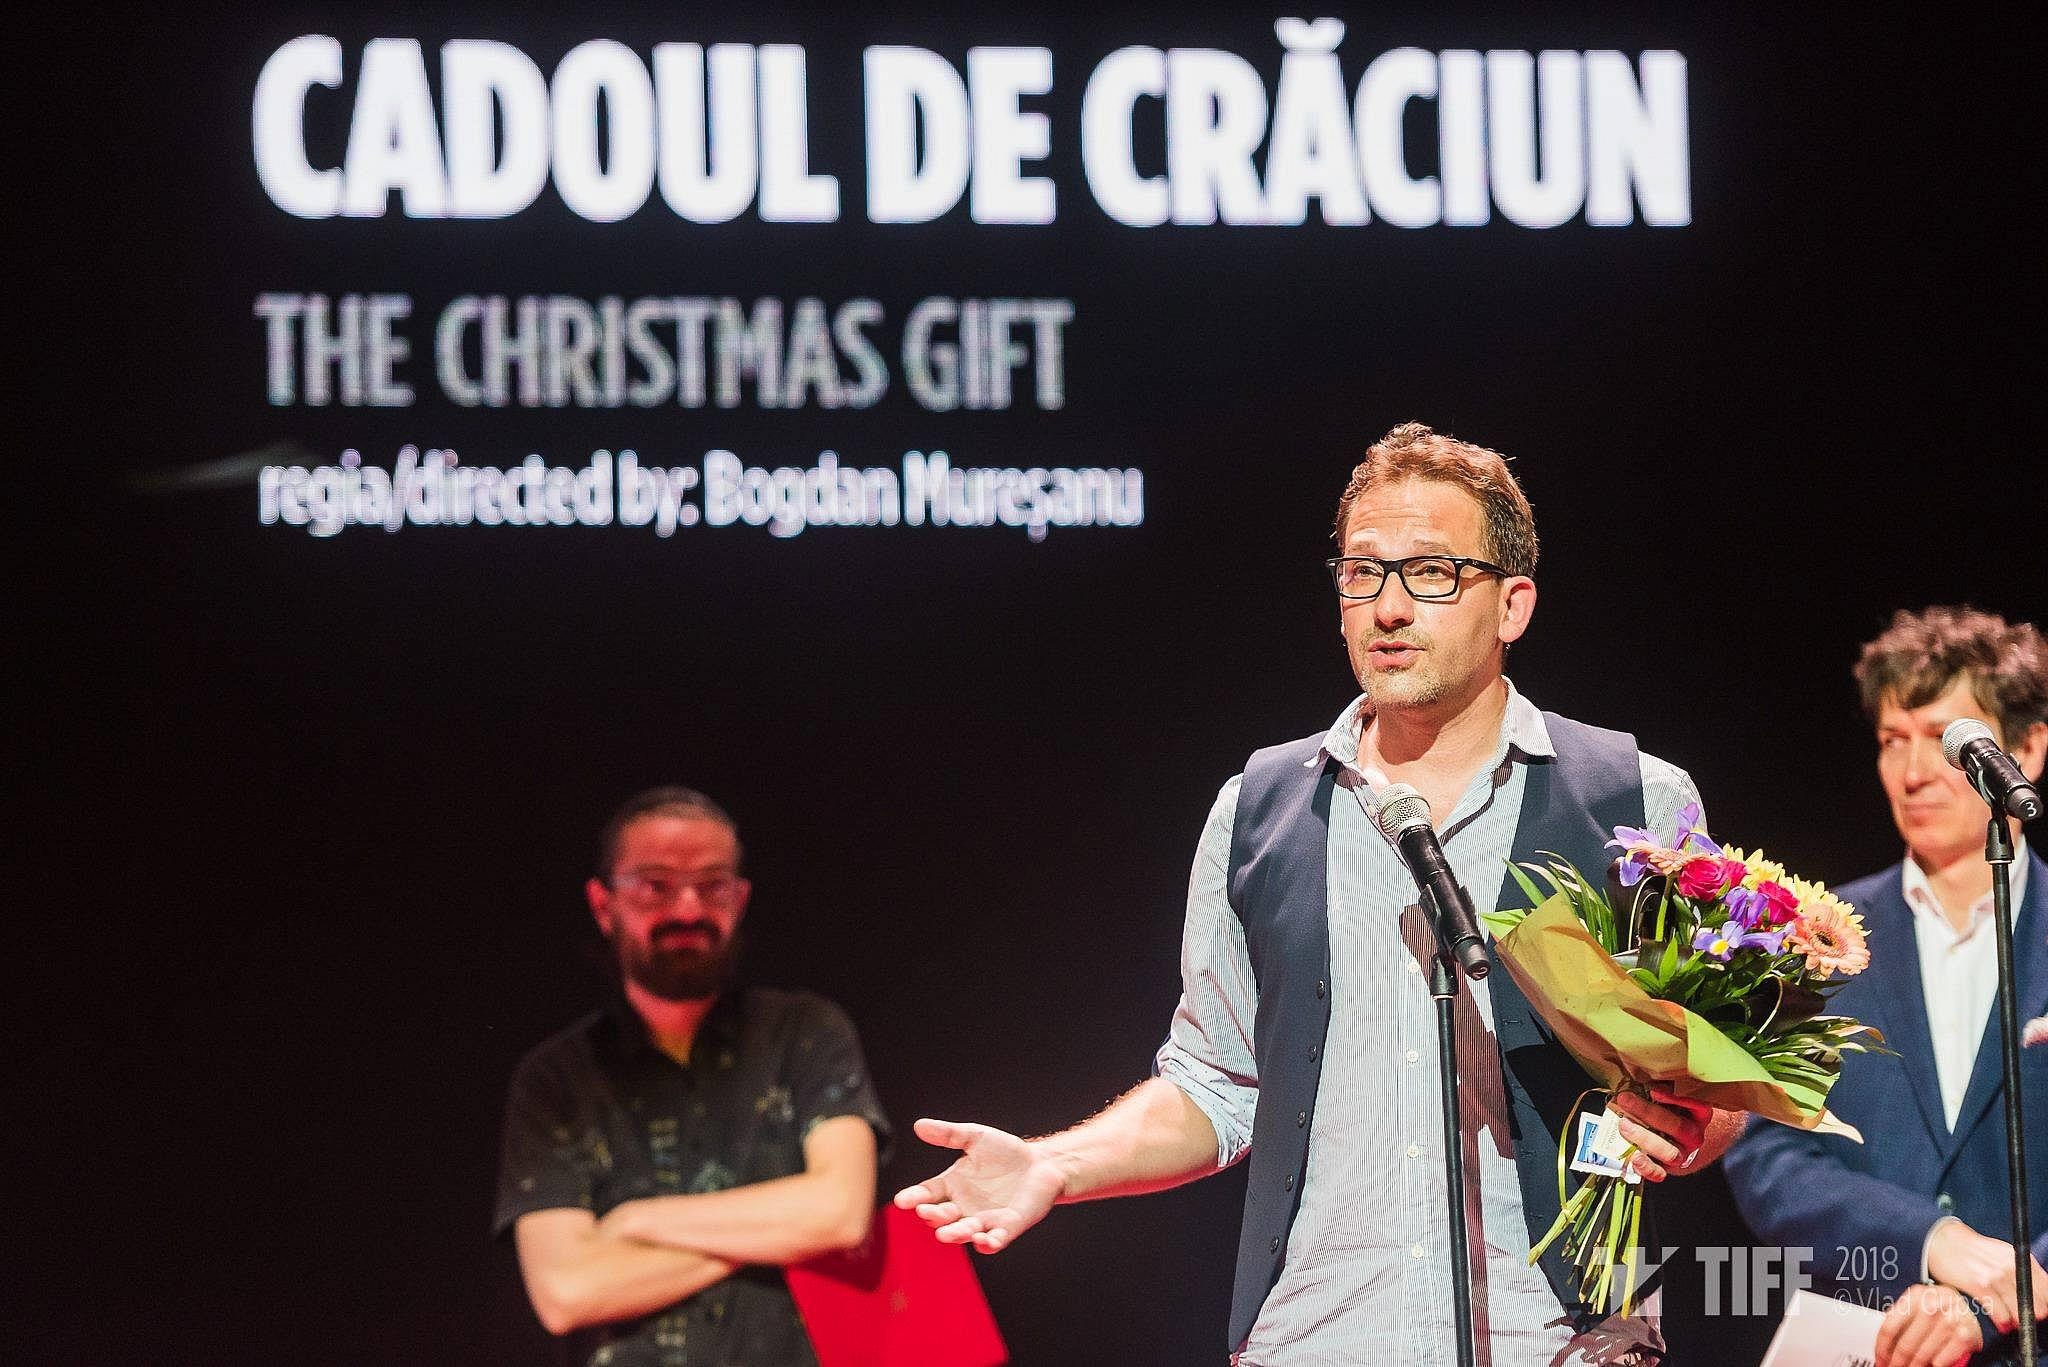 bogdan_muresanu_by_the_christmas_gift_cadoul_de_craciun_fb